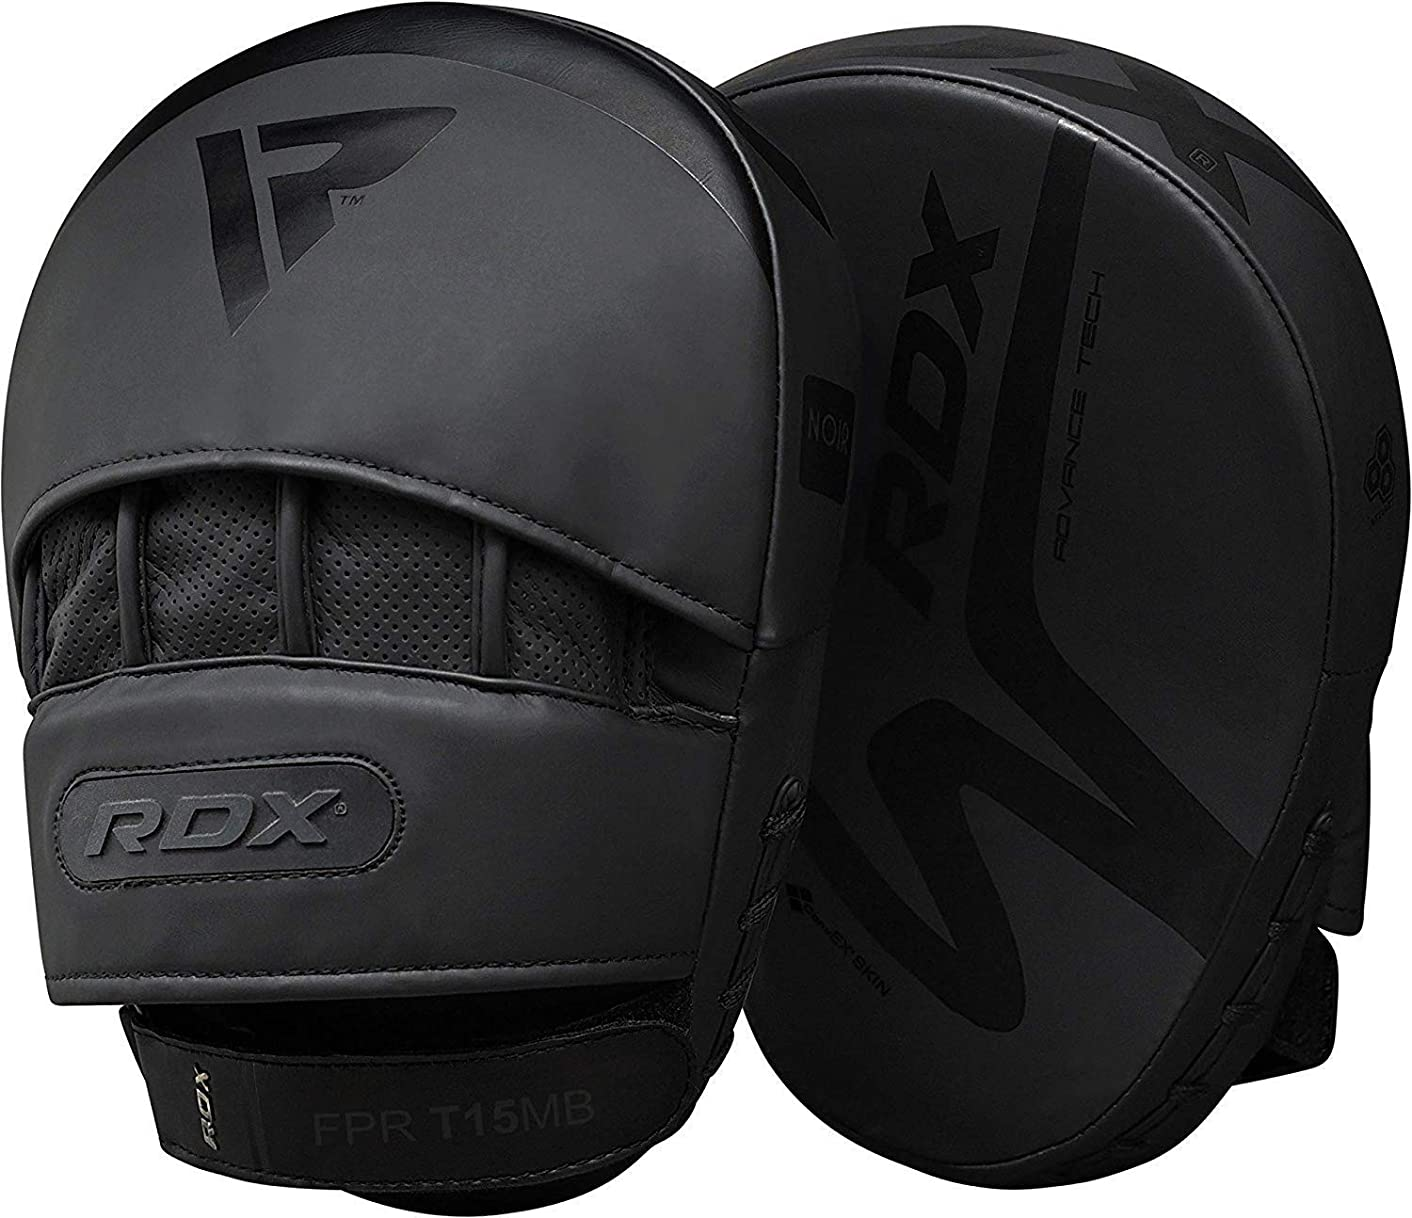 RDX Boxing Pads Curved MMA Focus Mitts Muay Thai Training | Matte Black Convex Skin Leather with Adjustable Strap | Martial Arts Hook and Jab Punching Target Hand Shield